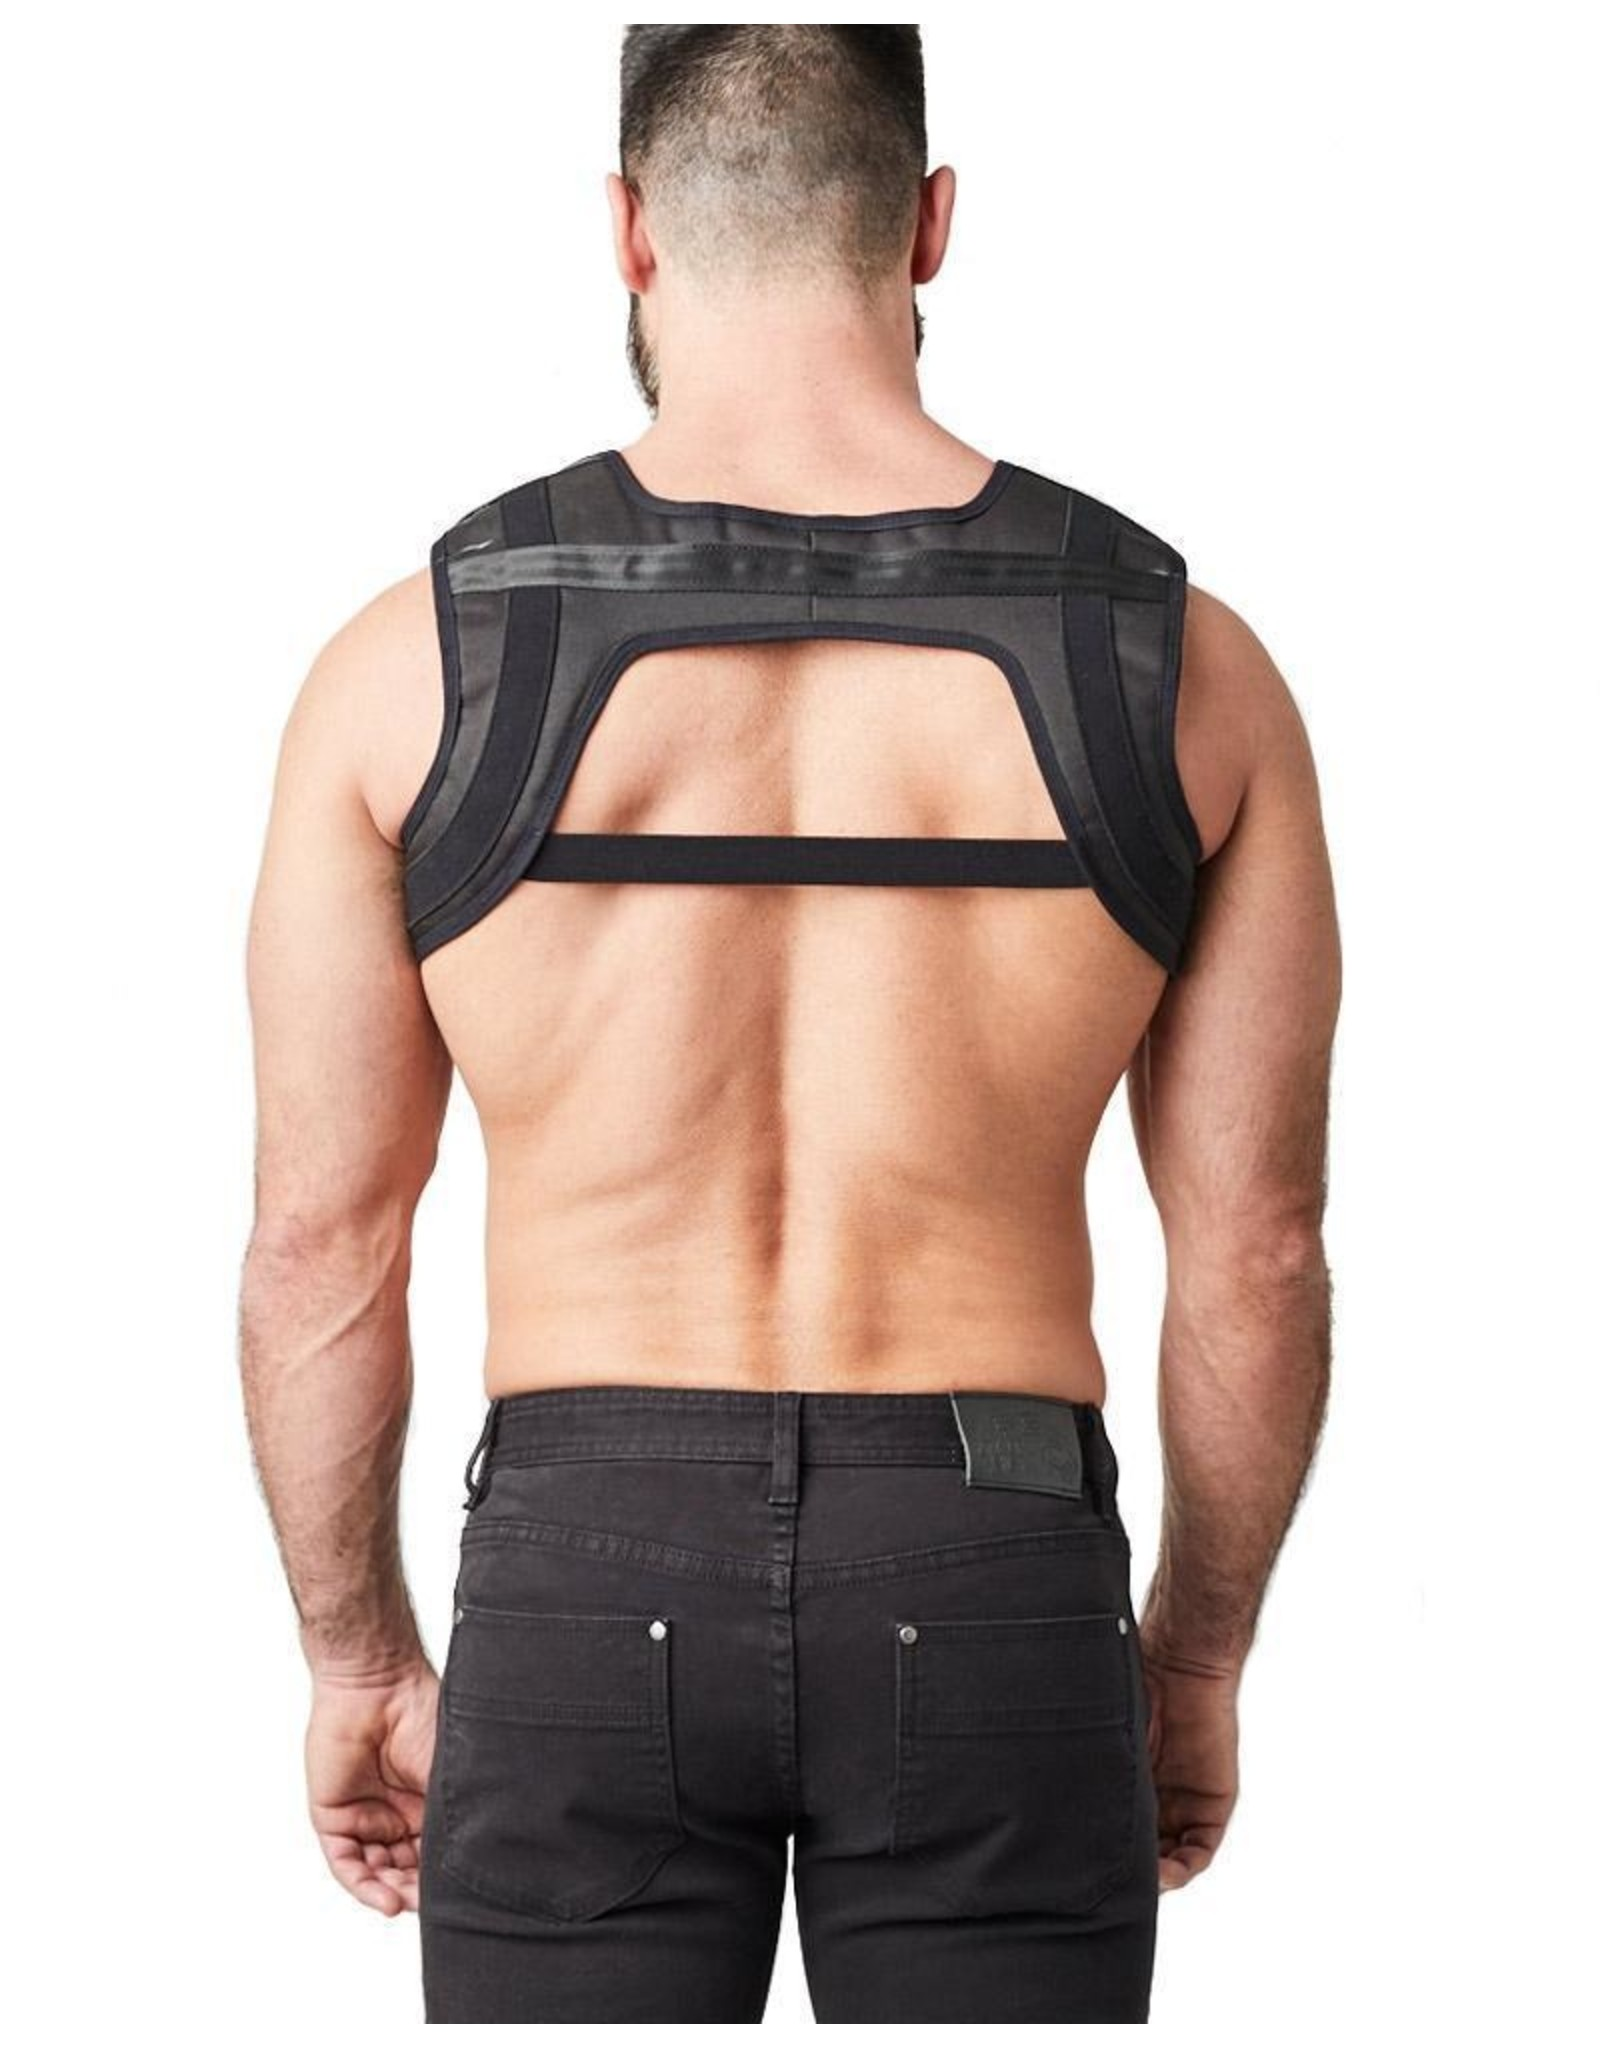 Nasty Pig Nasty Pig Calibrate Bulldog Harness